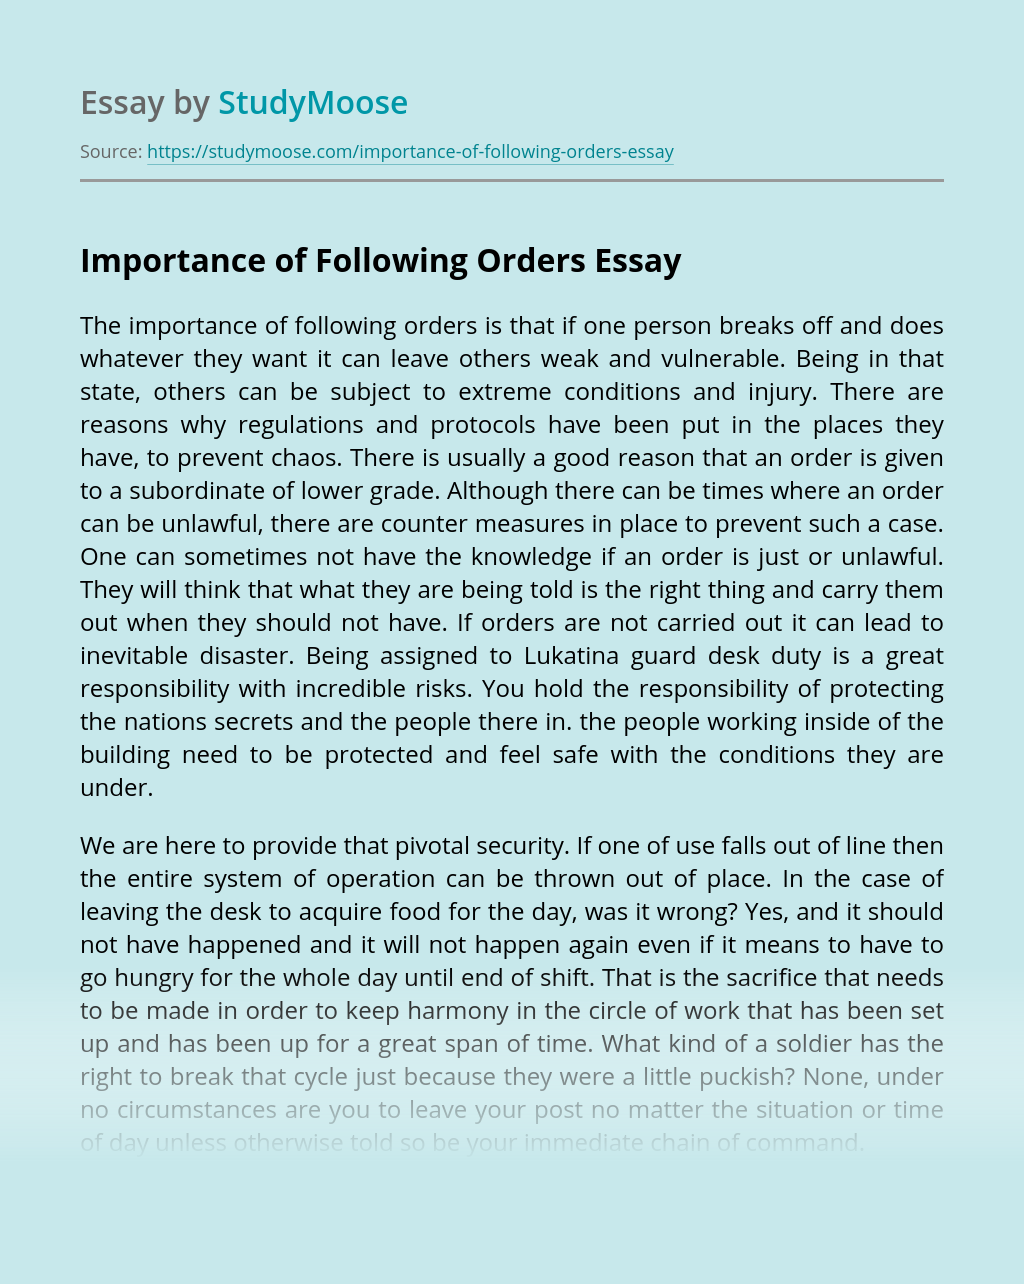 Importance of Following Orders